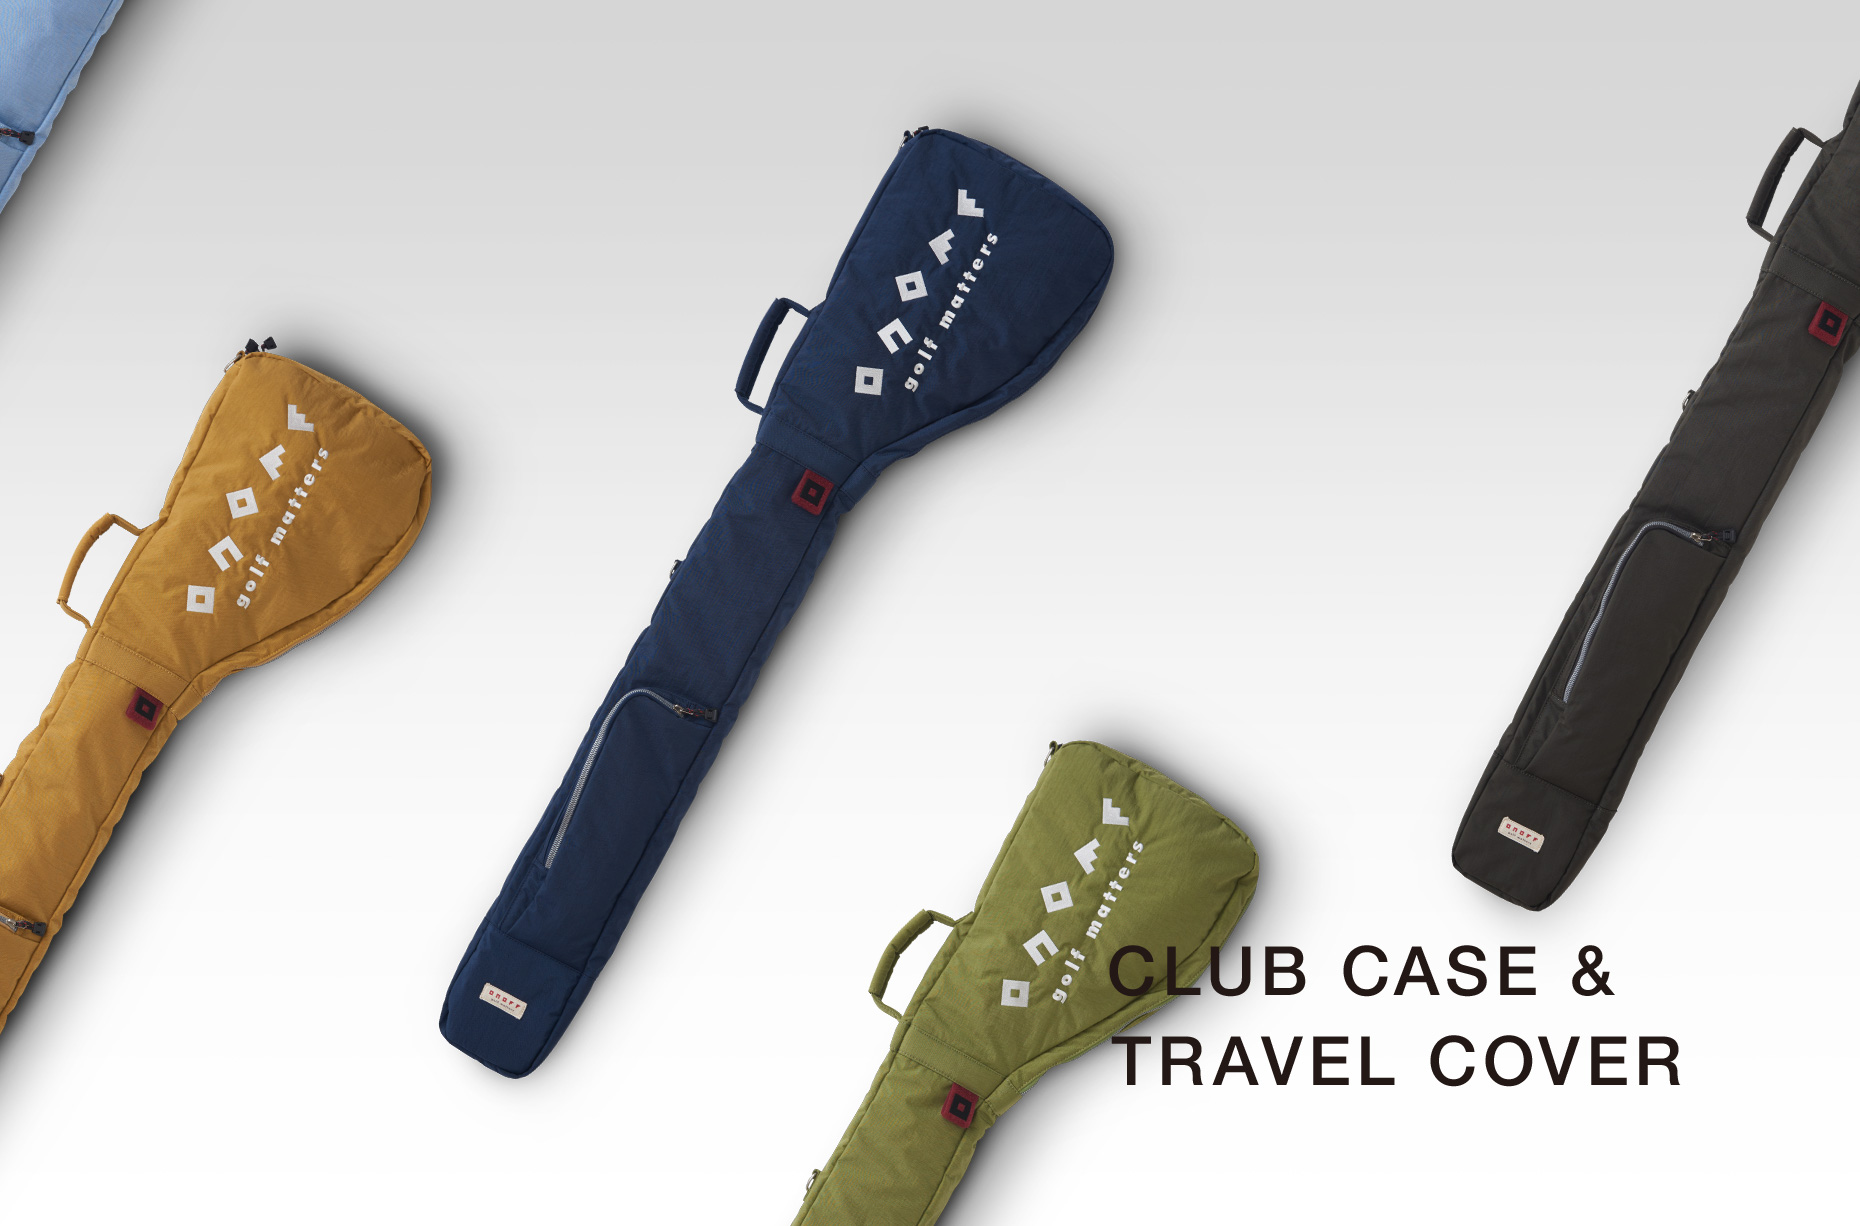 Club Case & Travel Cover